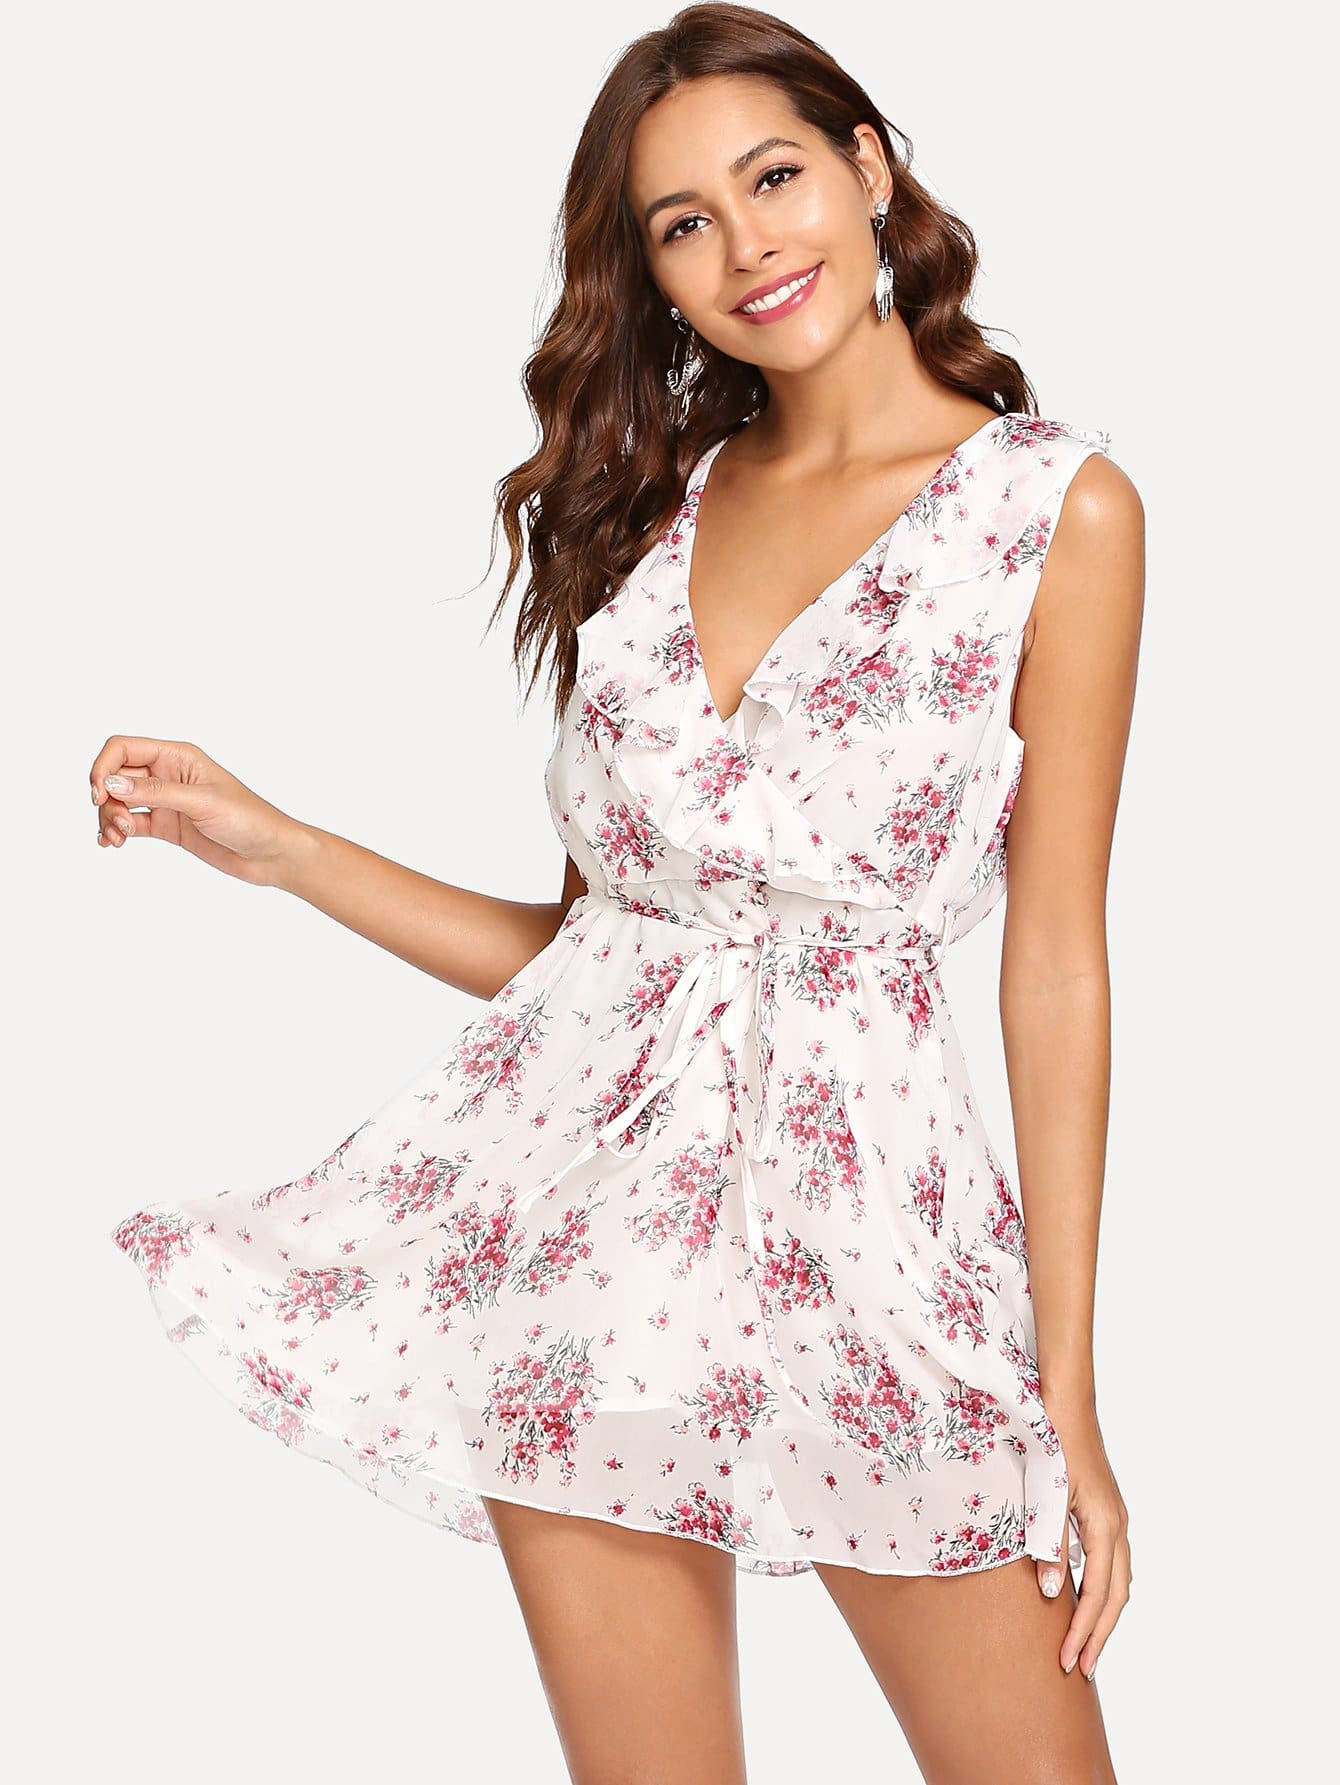 Купить Daisy Print Ruffle Trim Dress, Giulia, SheIn